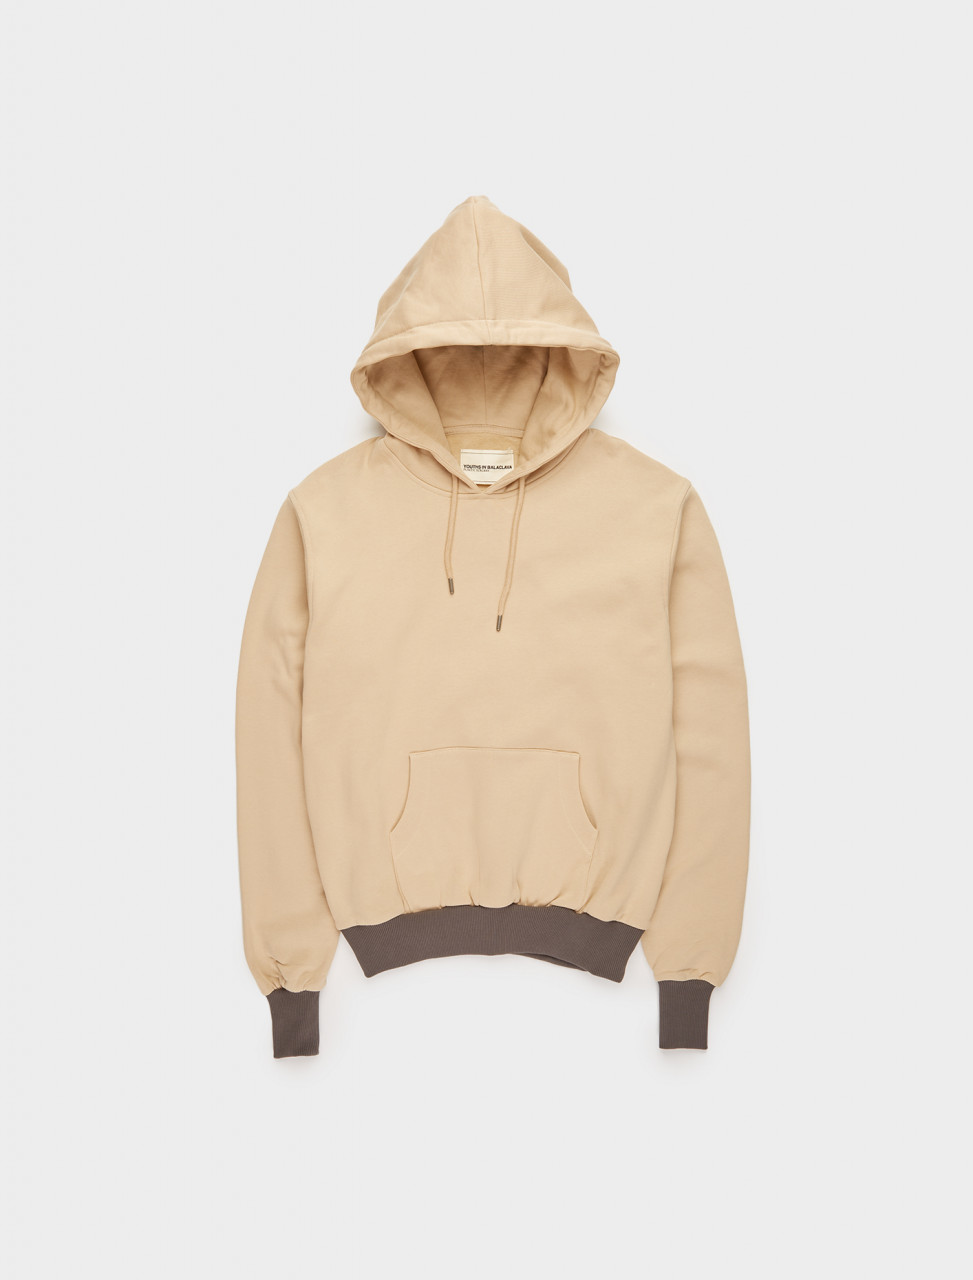 328-YOU02T018-03 YOUTHS IN BALACLAVA Y-SHAPE YOKE HOODIE IN CREAM